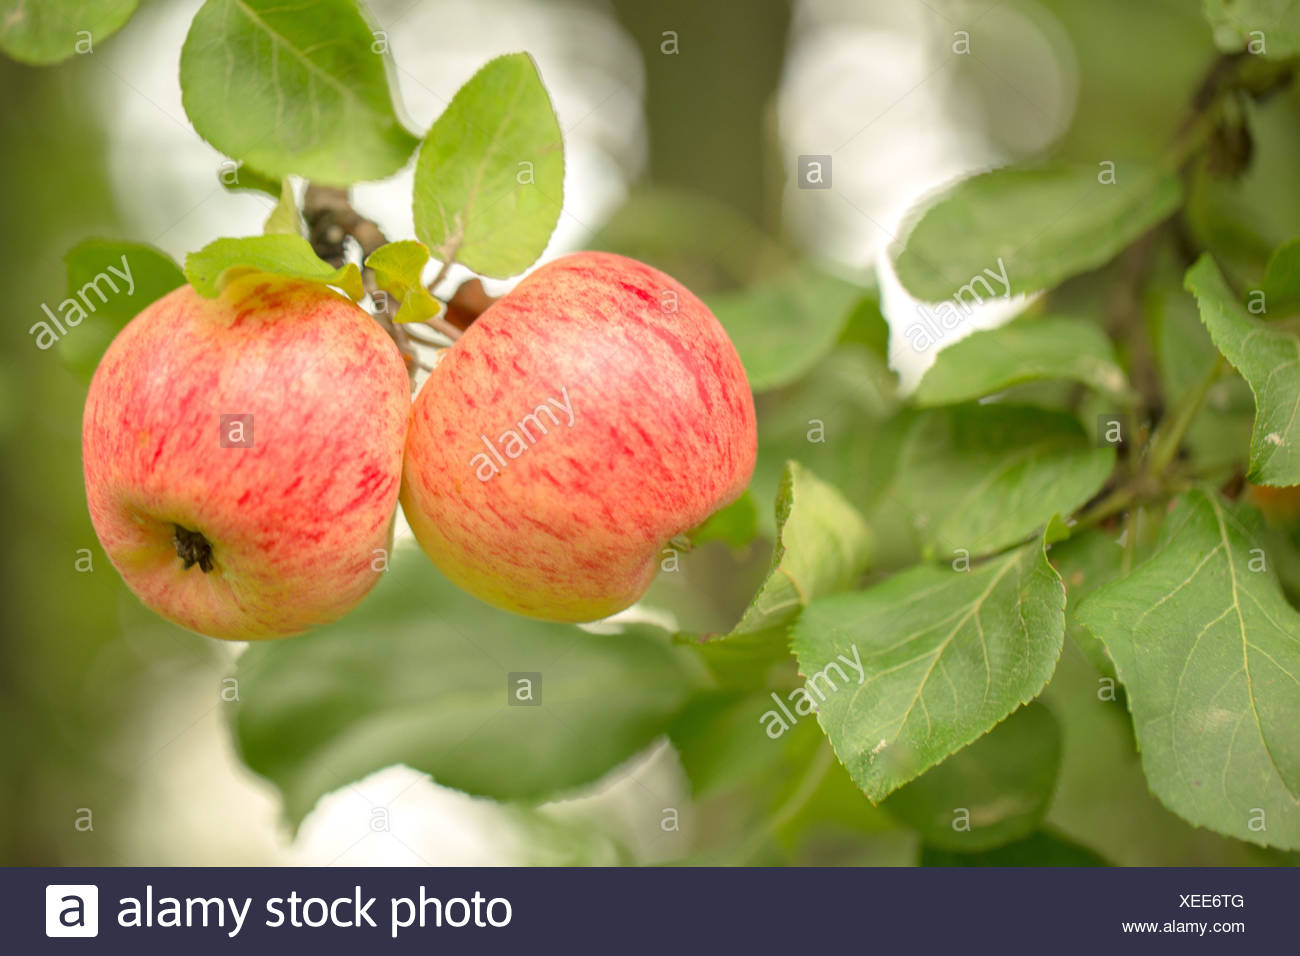 2 apples,2 objects,4-season autumn,agriculture,apple tree,apple tree branch,autumn,bokeh,bright,closeup,close-up apples,colorful,delicious,dessert,diet,food,four season,fresh,freshness,fruit,green,health,healthy,juicy,leaf,leaves,light,natural,nature,nutr - Stock Image